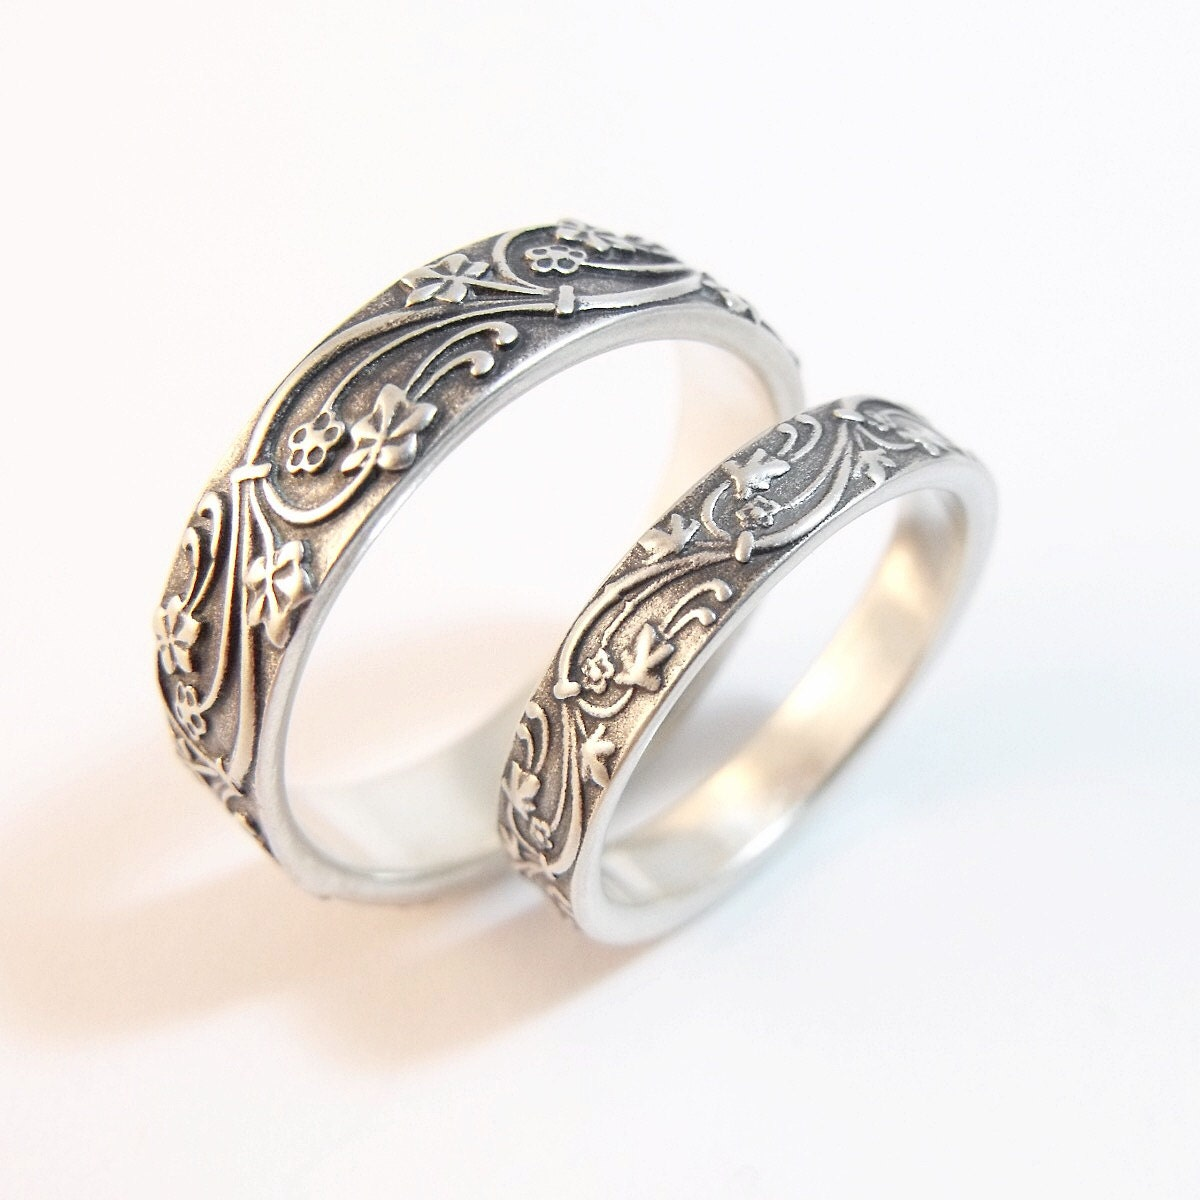 Wedding Band Set Wedding Rings Art Deco By DownToTheWireDesigns